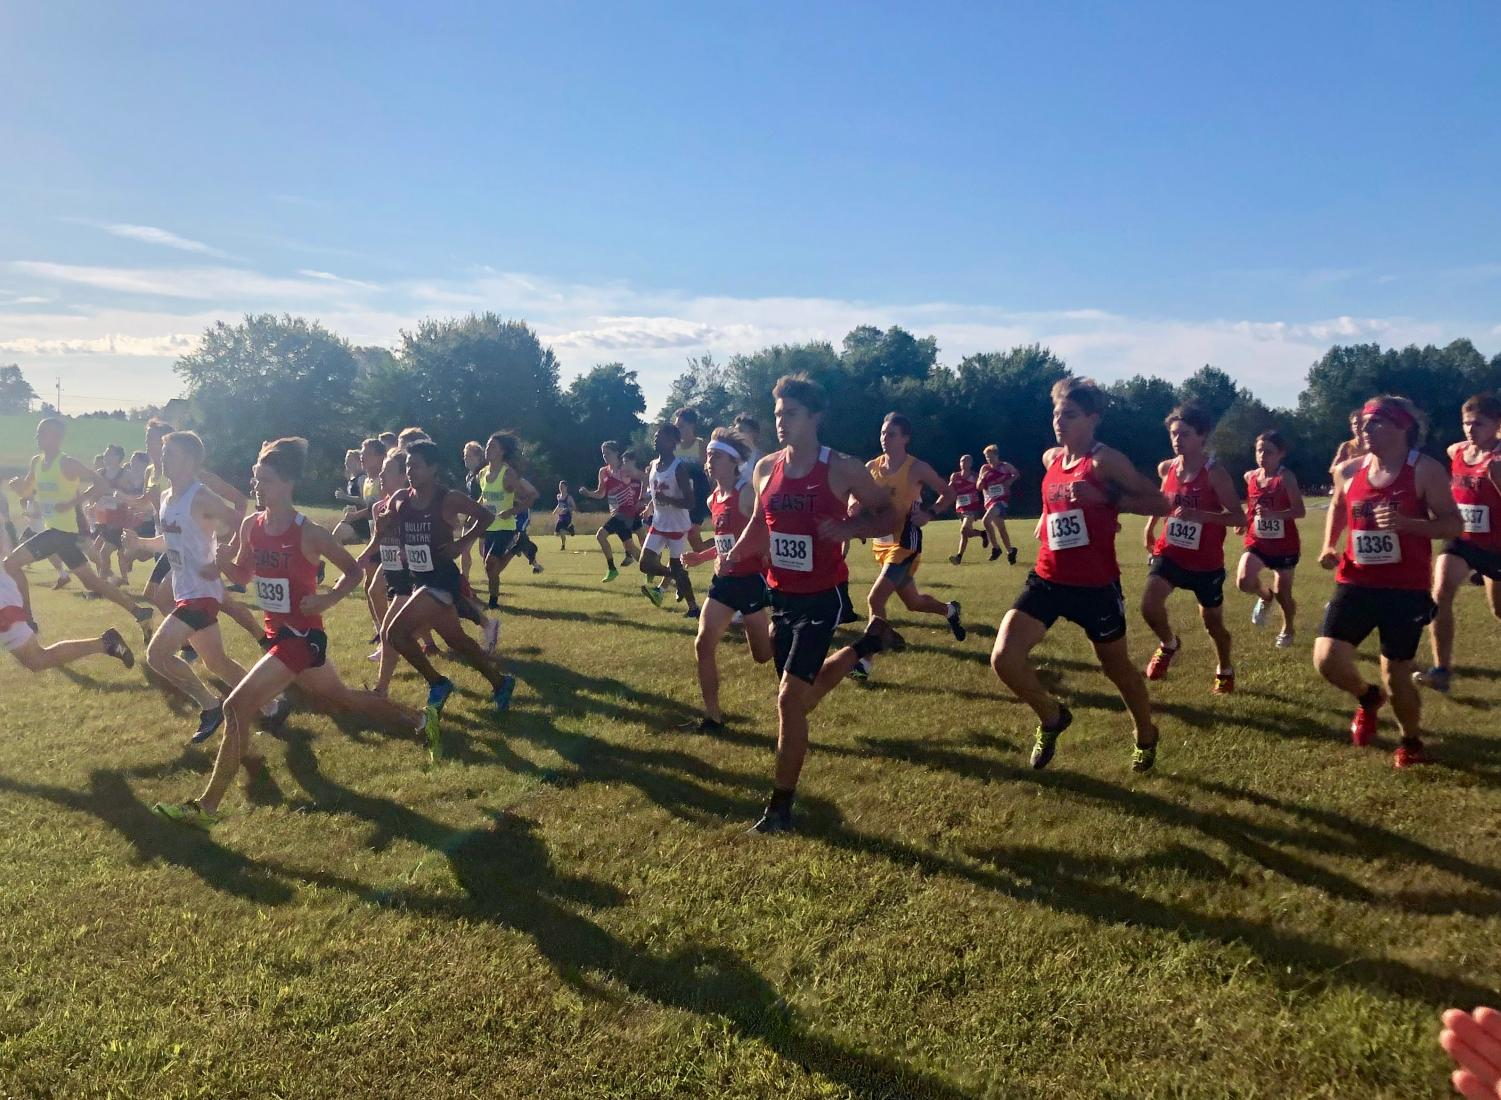 The cross country boys blast off the finish line and take late leads early in the race. They are happy with their past performances and continue to push themselves.